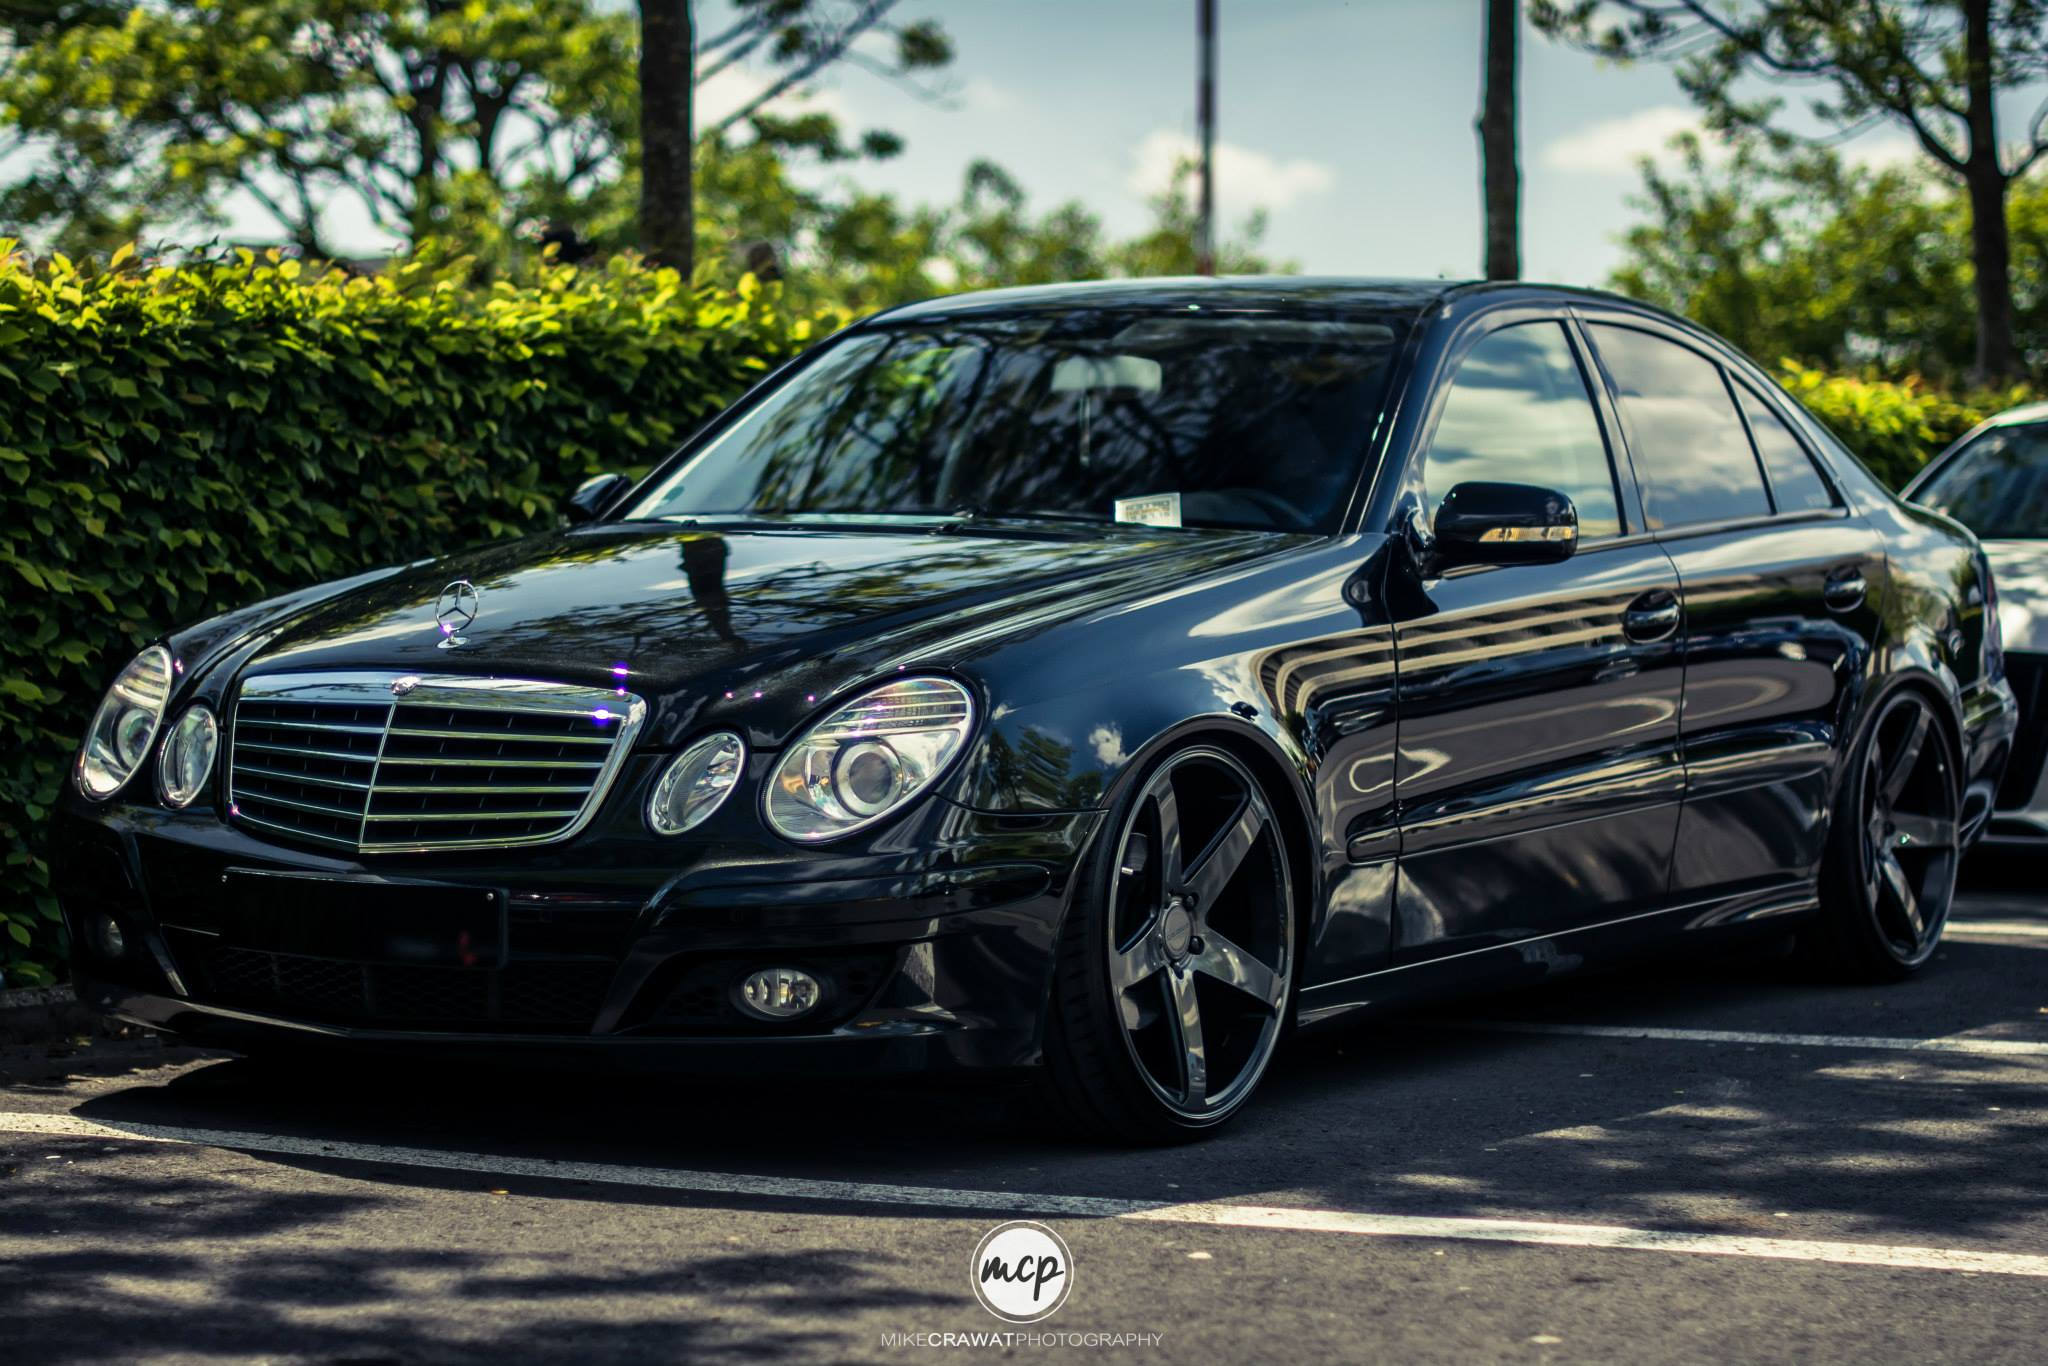 2007 mercedes benz e 200 cdi w211 facelift. Black Bedroom Furniture Sets. Home Design Ideas